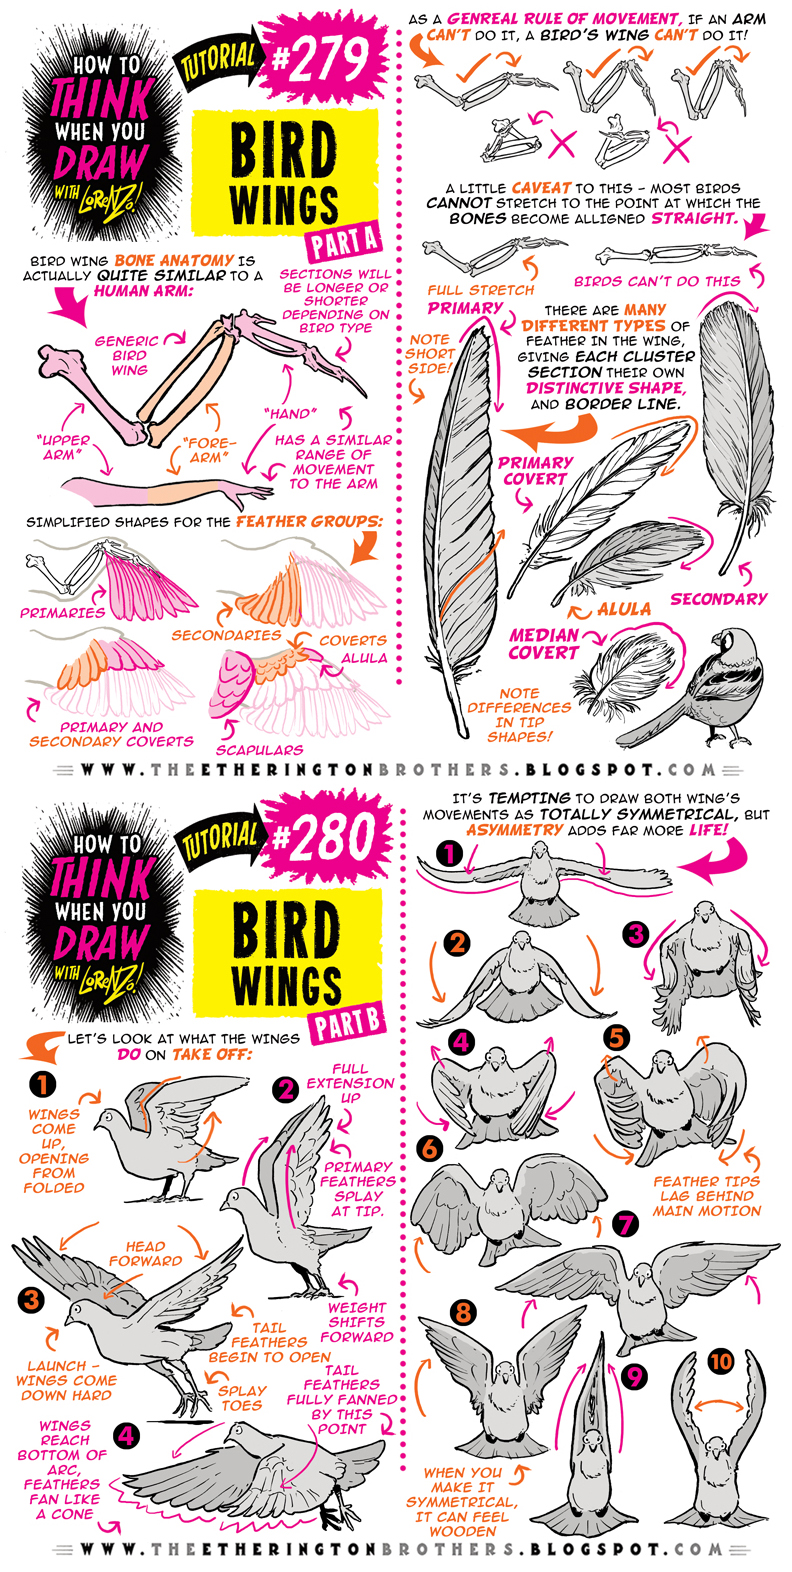 How to THINK when you draw BIRD WINGS tutorial!